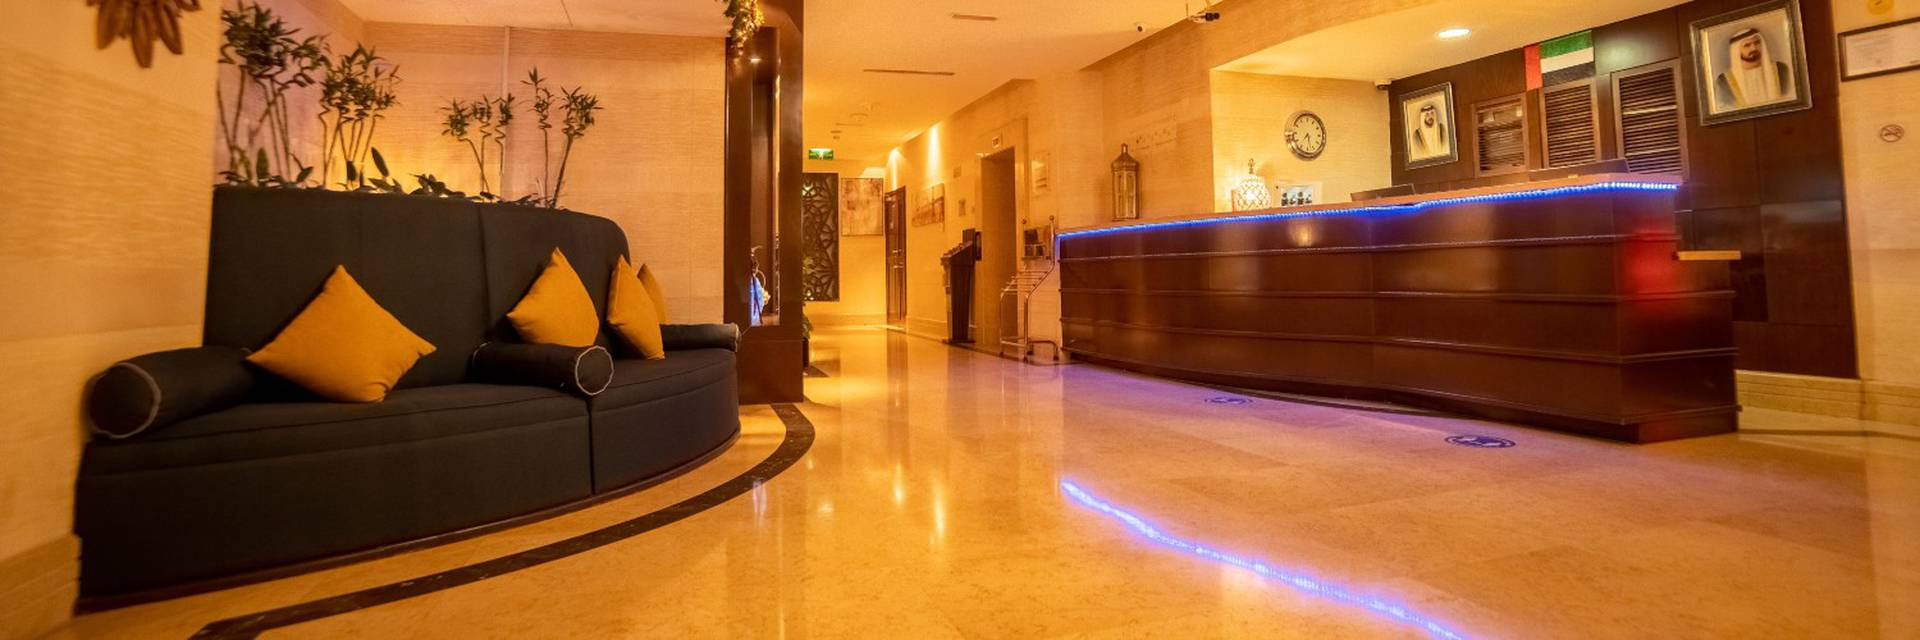 Reviews suha jbr hotel apartments dubai